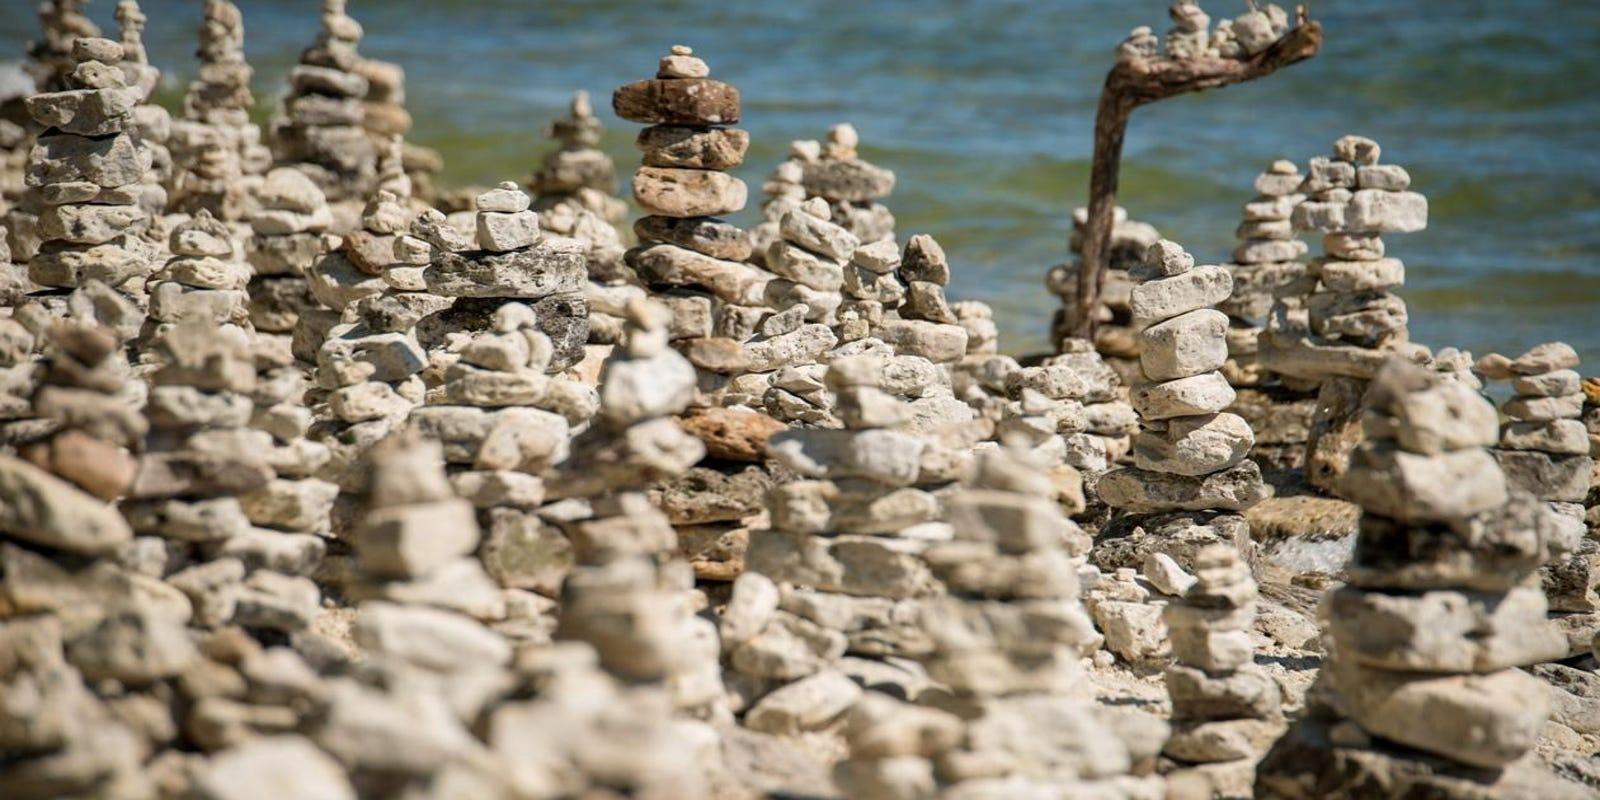 Rock Stacking Deplorable Activity Or Community Art